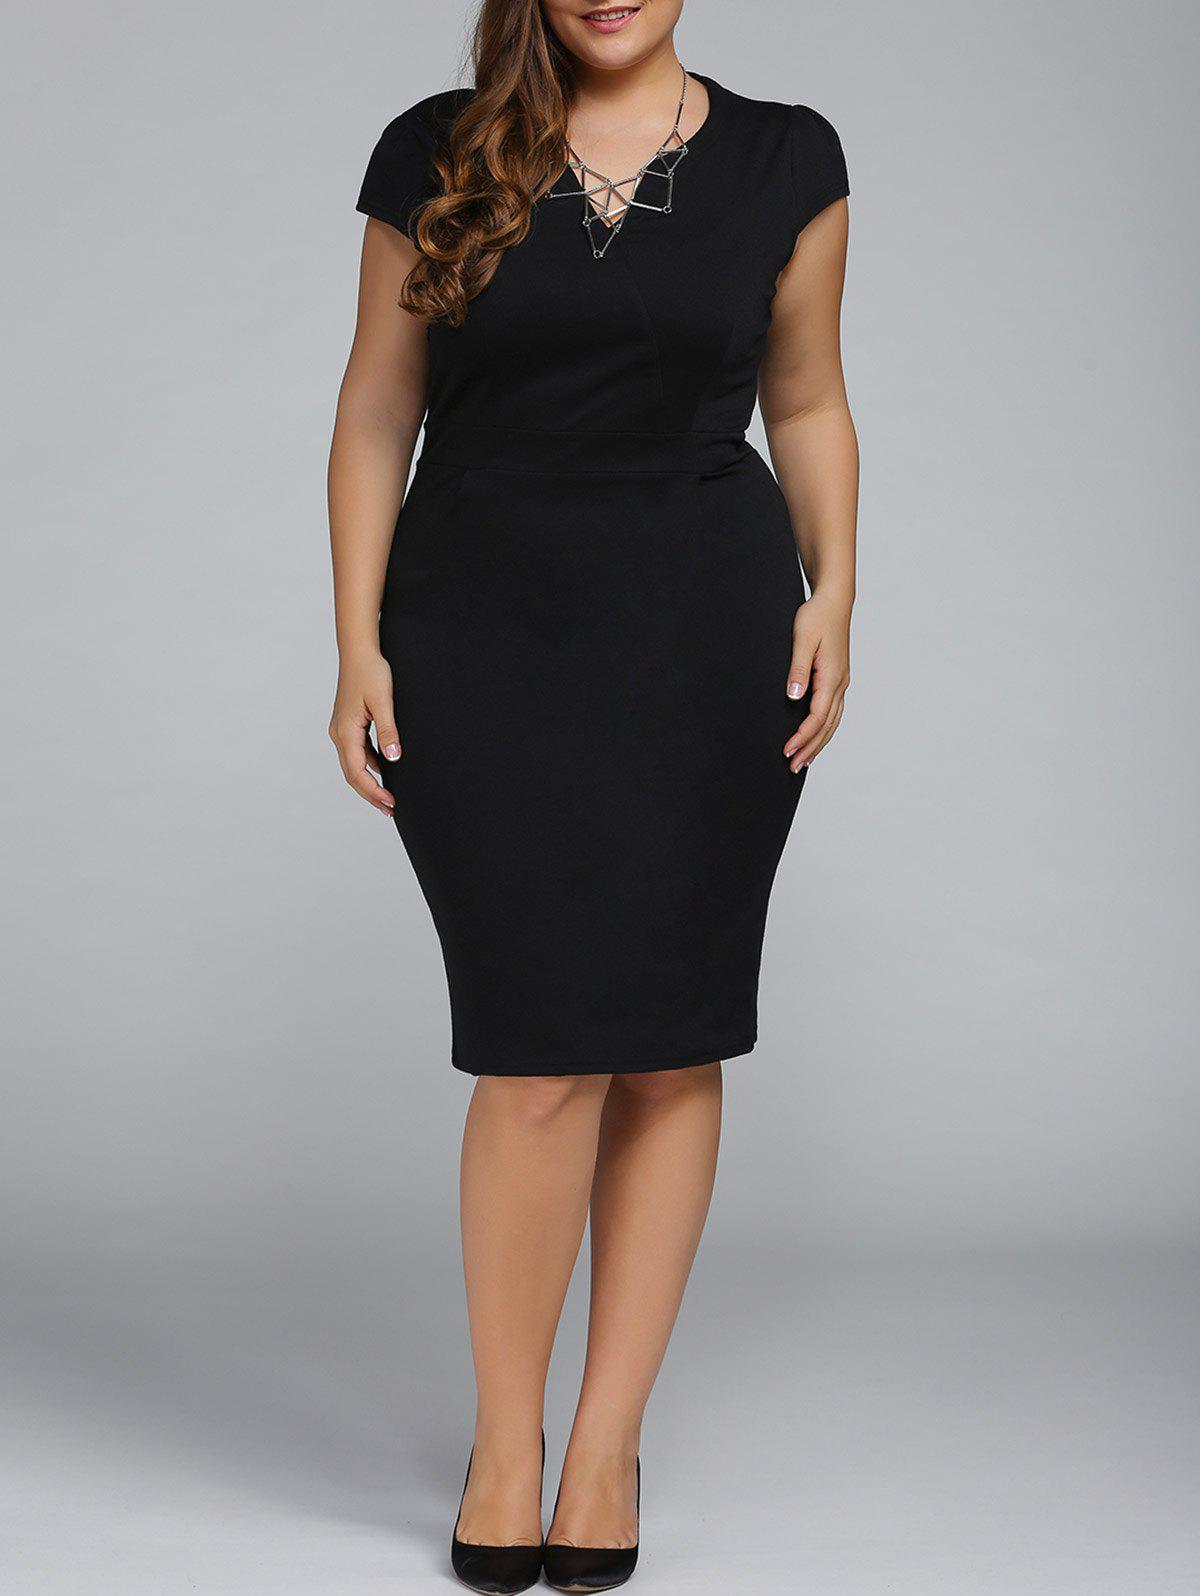 Plus Size Cap Sleeve Sheath Work Christmas Party DressWOMEN<br><br>Size: 2XL; Color: BLACK; Style: Work; Material: Cotton Blend; Silhouette: Sheath; Dresses Length: Knee-Length; Neckline: V-Neck; Sleeve Length: Short Sleeves; Pattern Type: Solid; Elasticity: Elastic; With Belt: No; Season: Fall,Spring,Summer; Weight: 0.331kg; Package Contents: 1 x Dress;